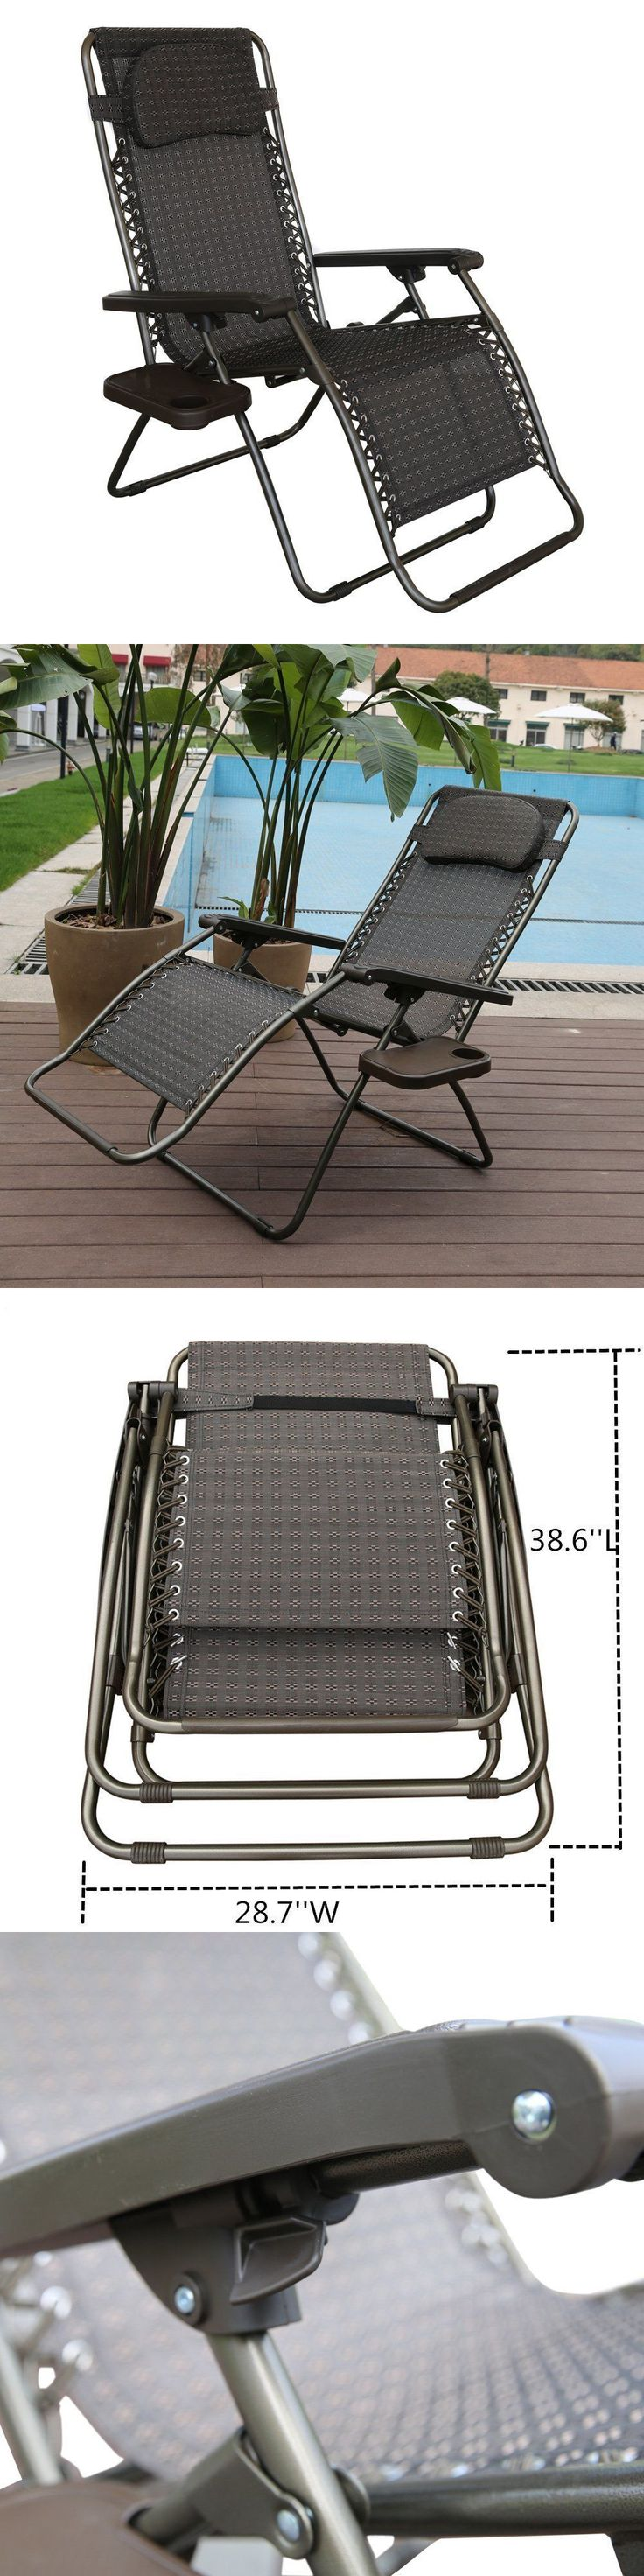 Furniture amp accessories 26 quot camo padded folding anti gravity chair - Chairs 79682 Oversized Recliner Zero Gravity Chair With Detachable Drink Tray Steel Frame